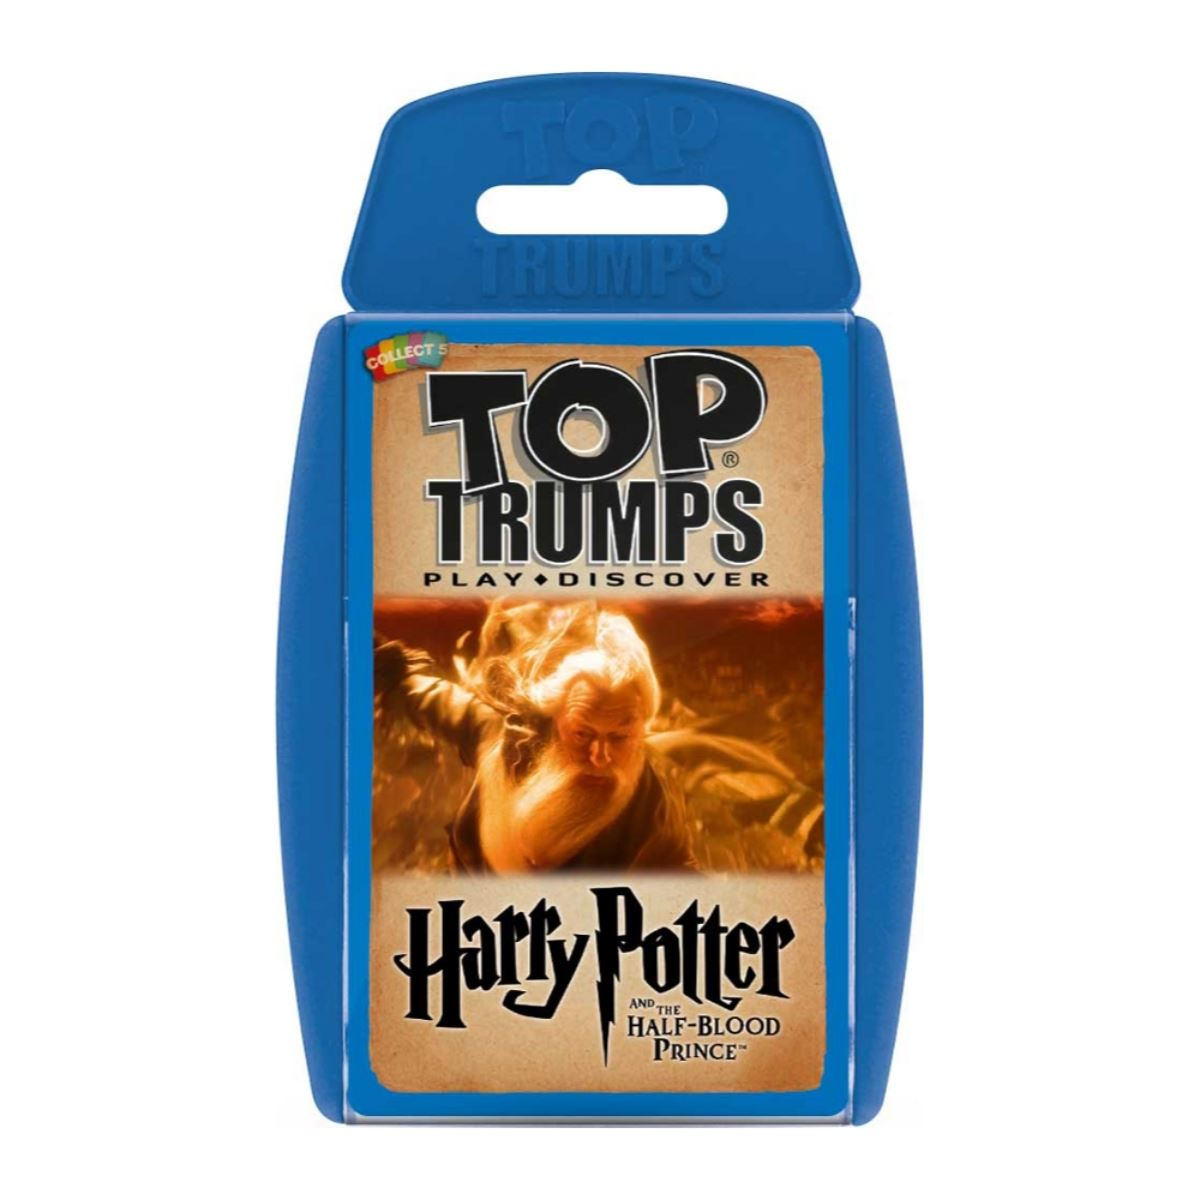 Harry Potter Half-blood Prince - Top Trumps, front of box